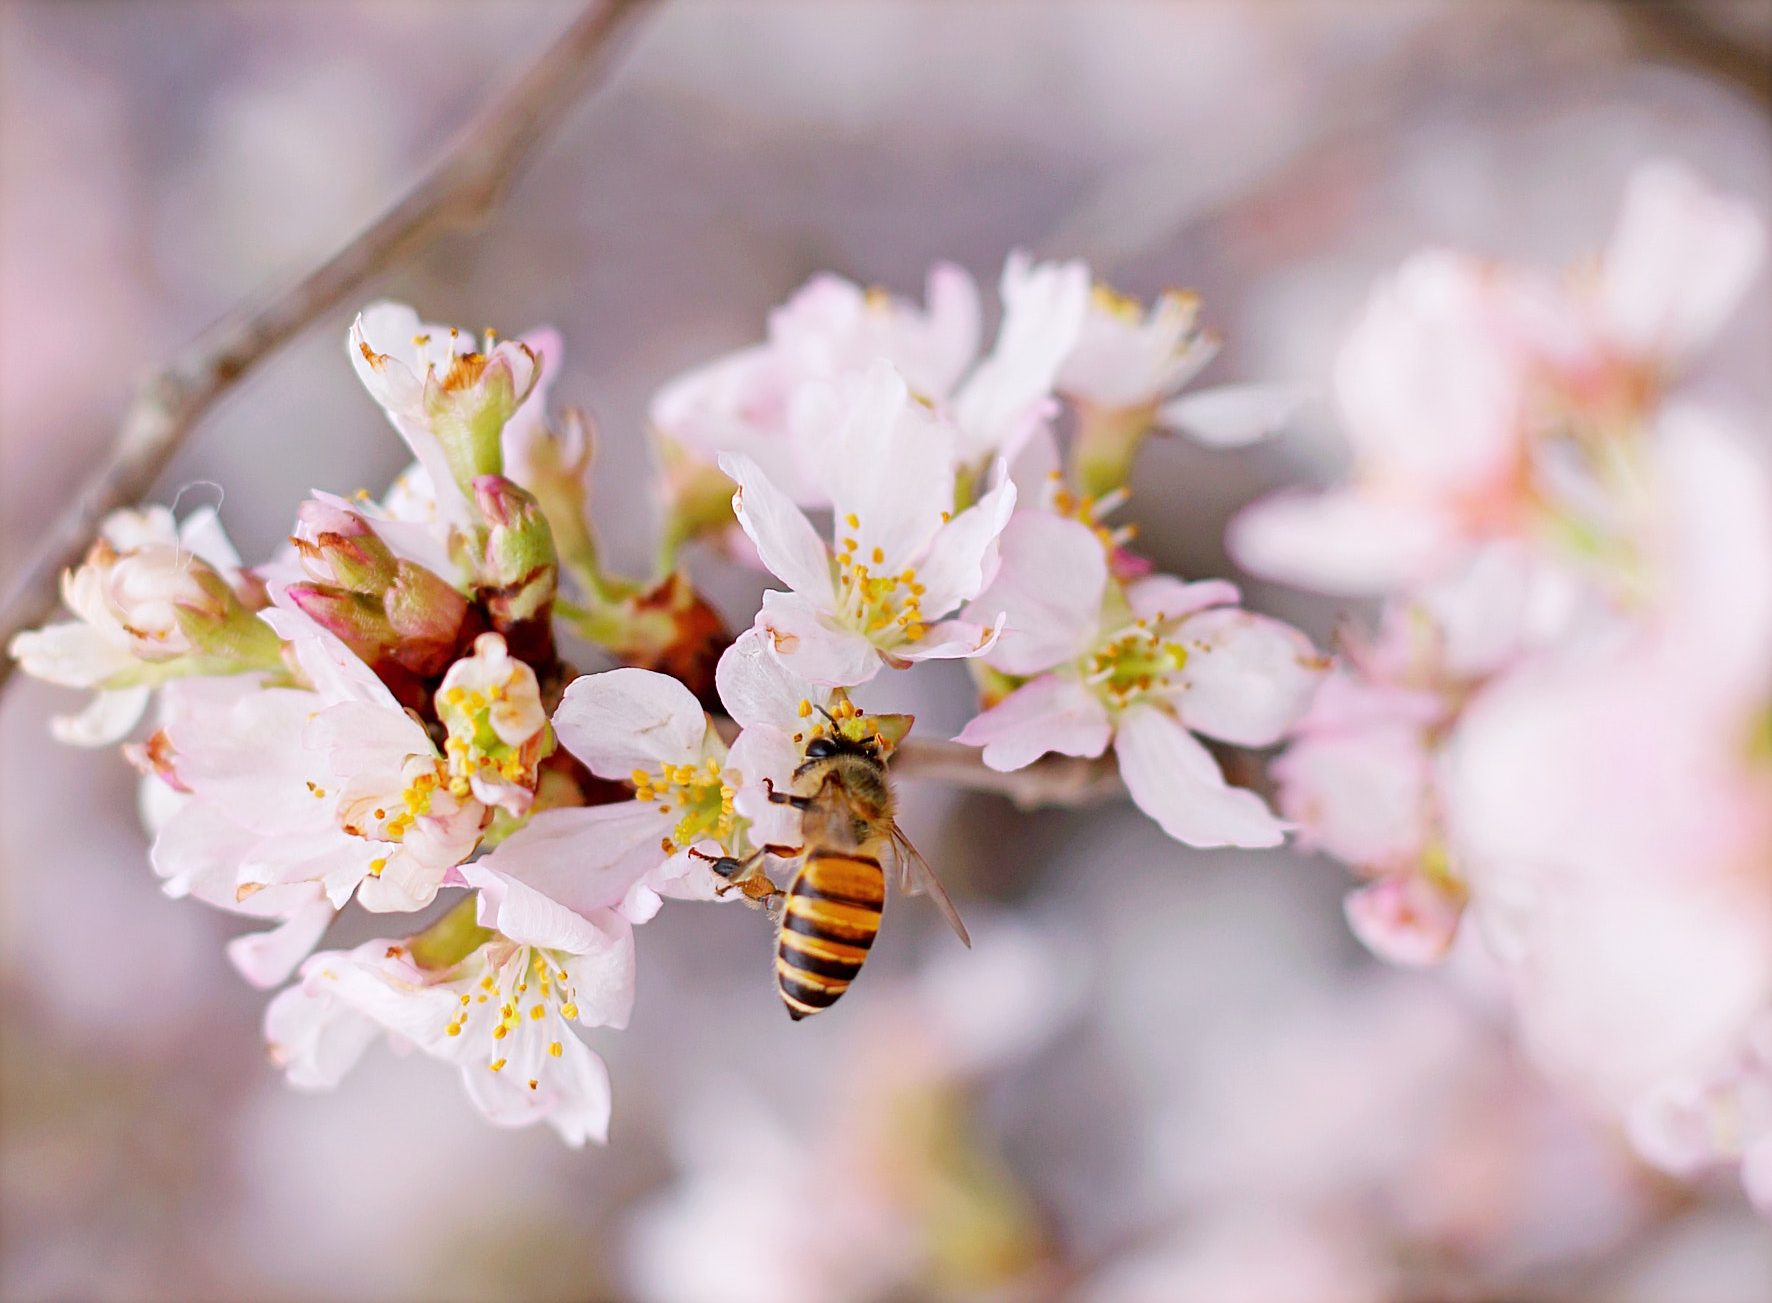 A bee on a cherry blossom